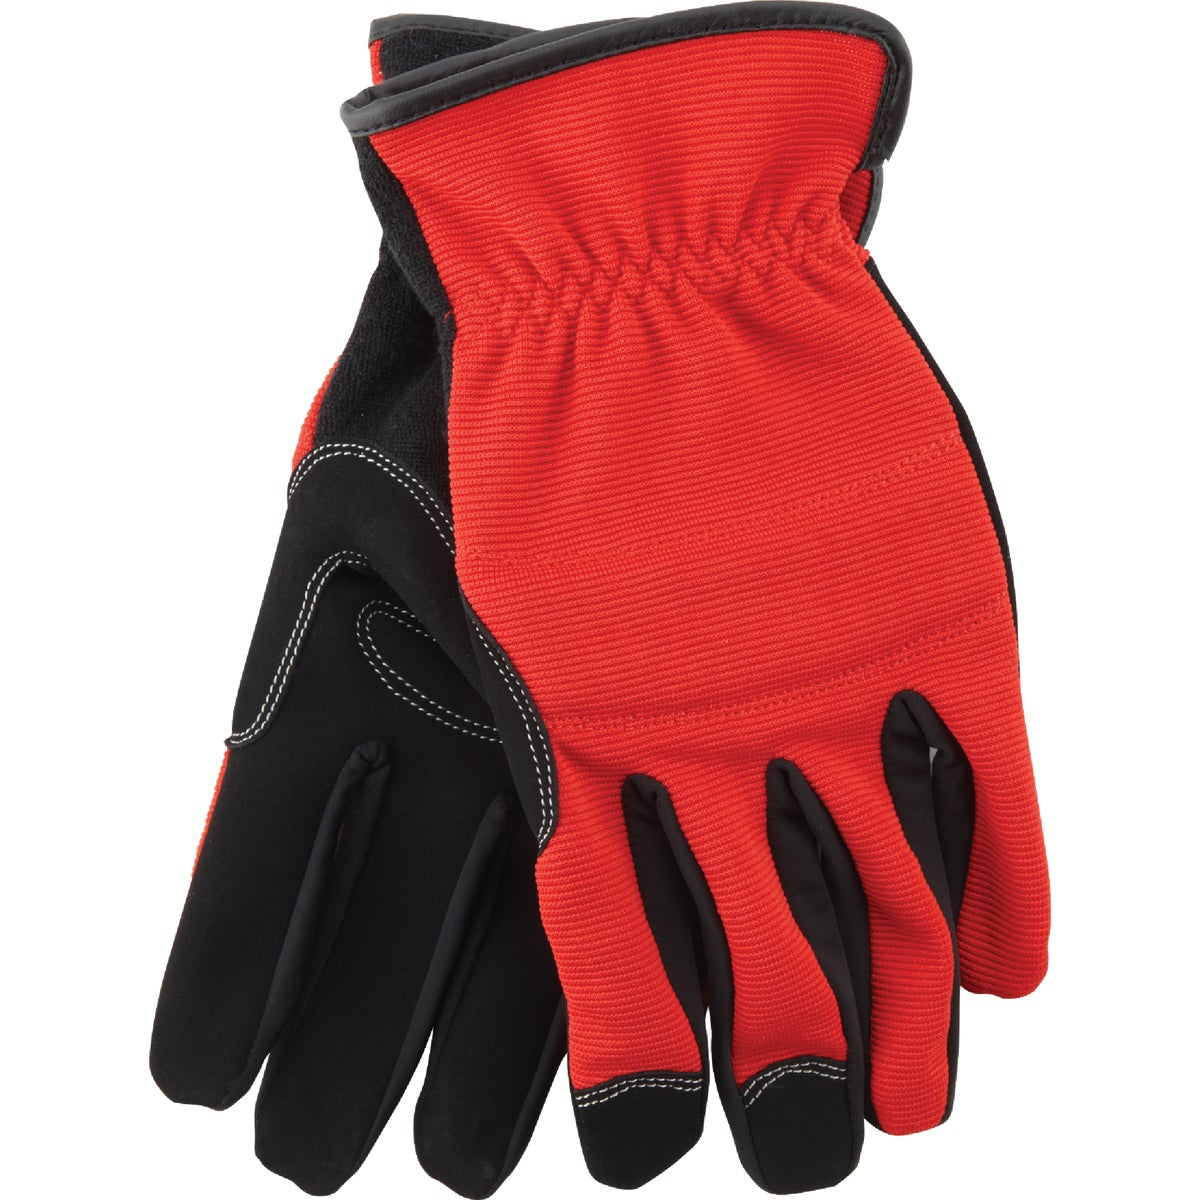 XL SHIR WRIST A/P GLOVE - 706459 by Do it Best